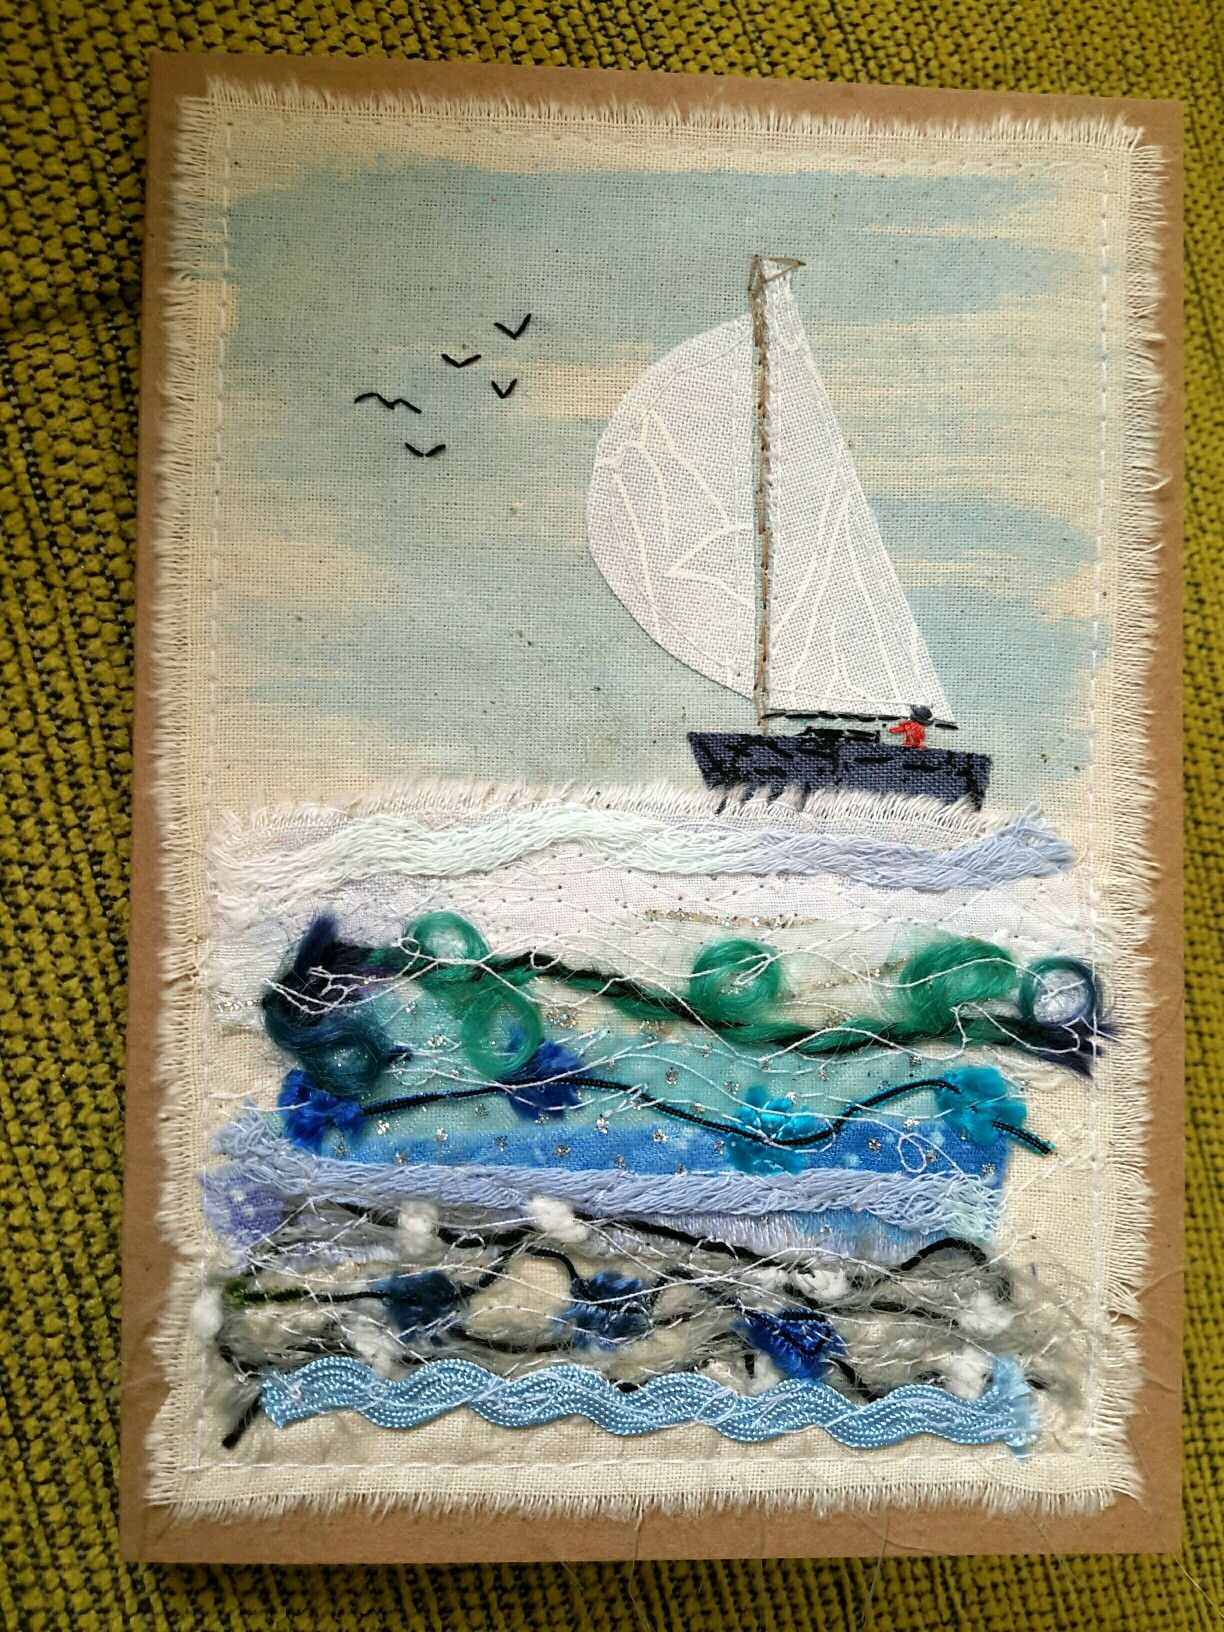 Pin by Cynthia George on Applique | Pinterest | Machine embroidery ...